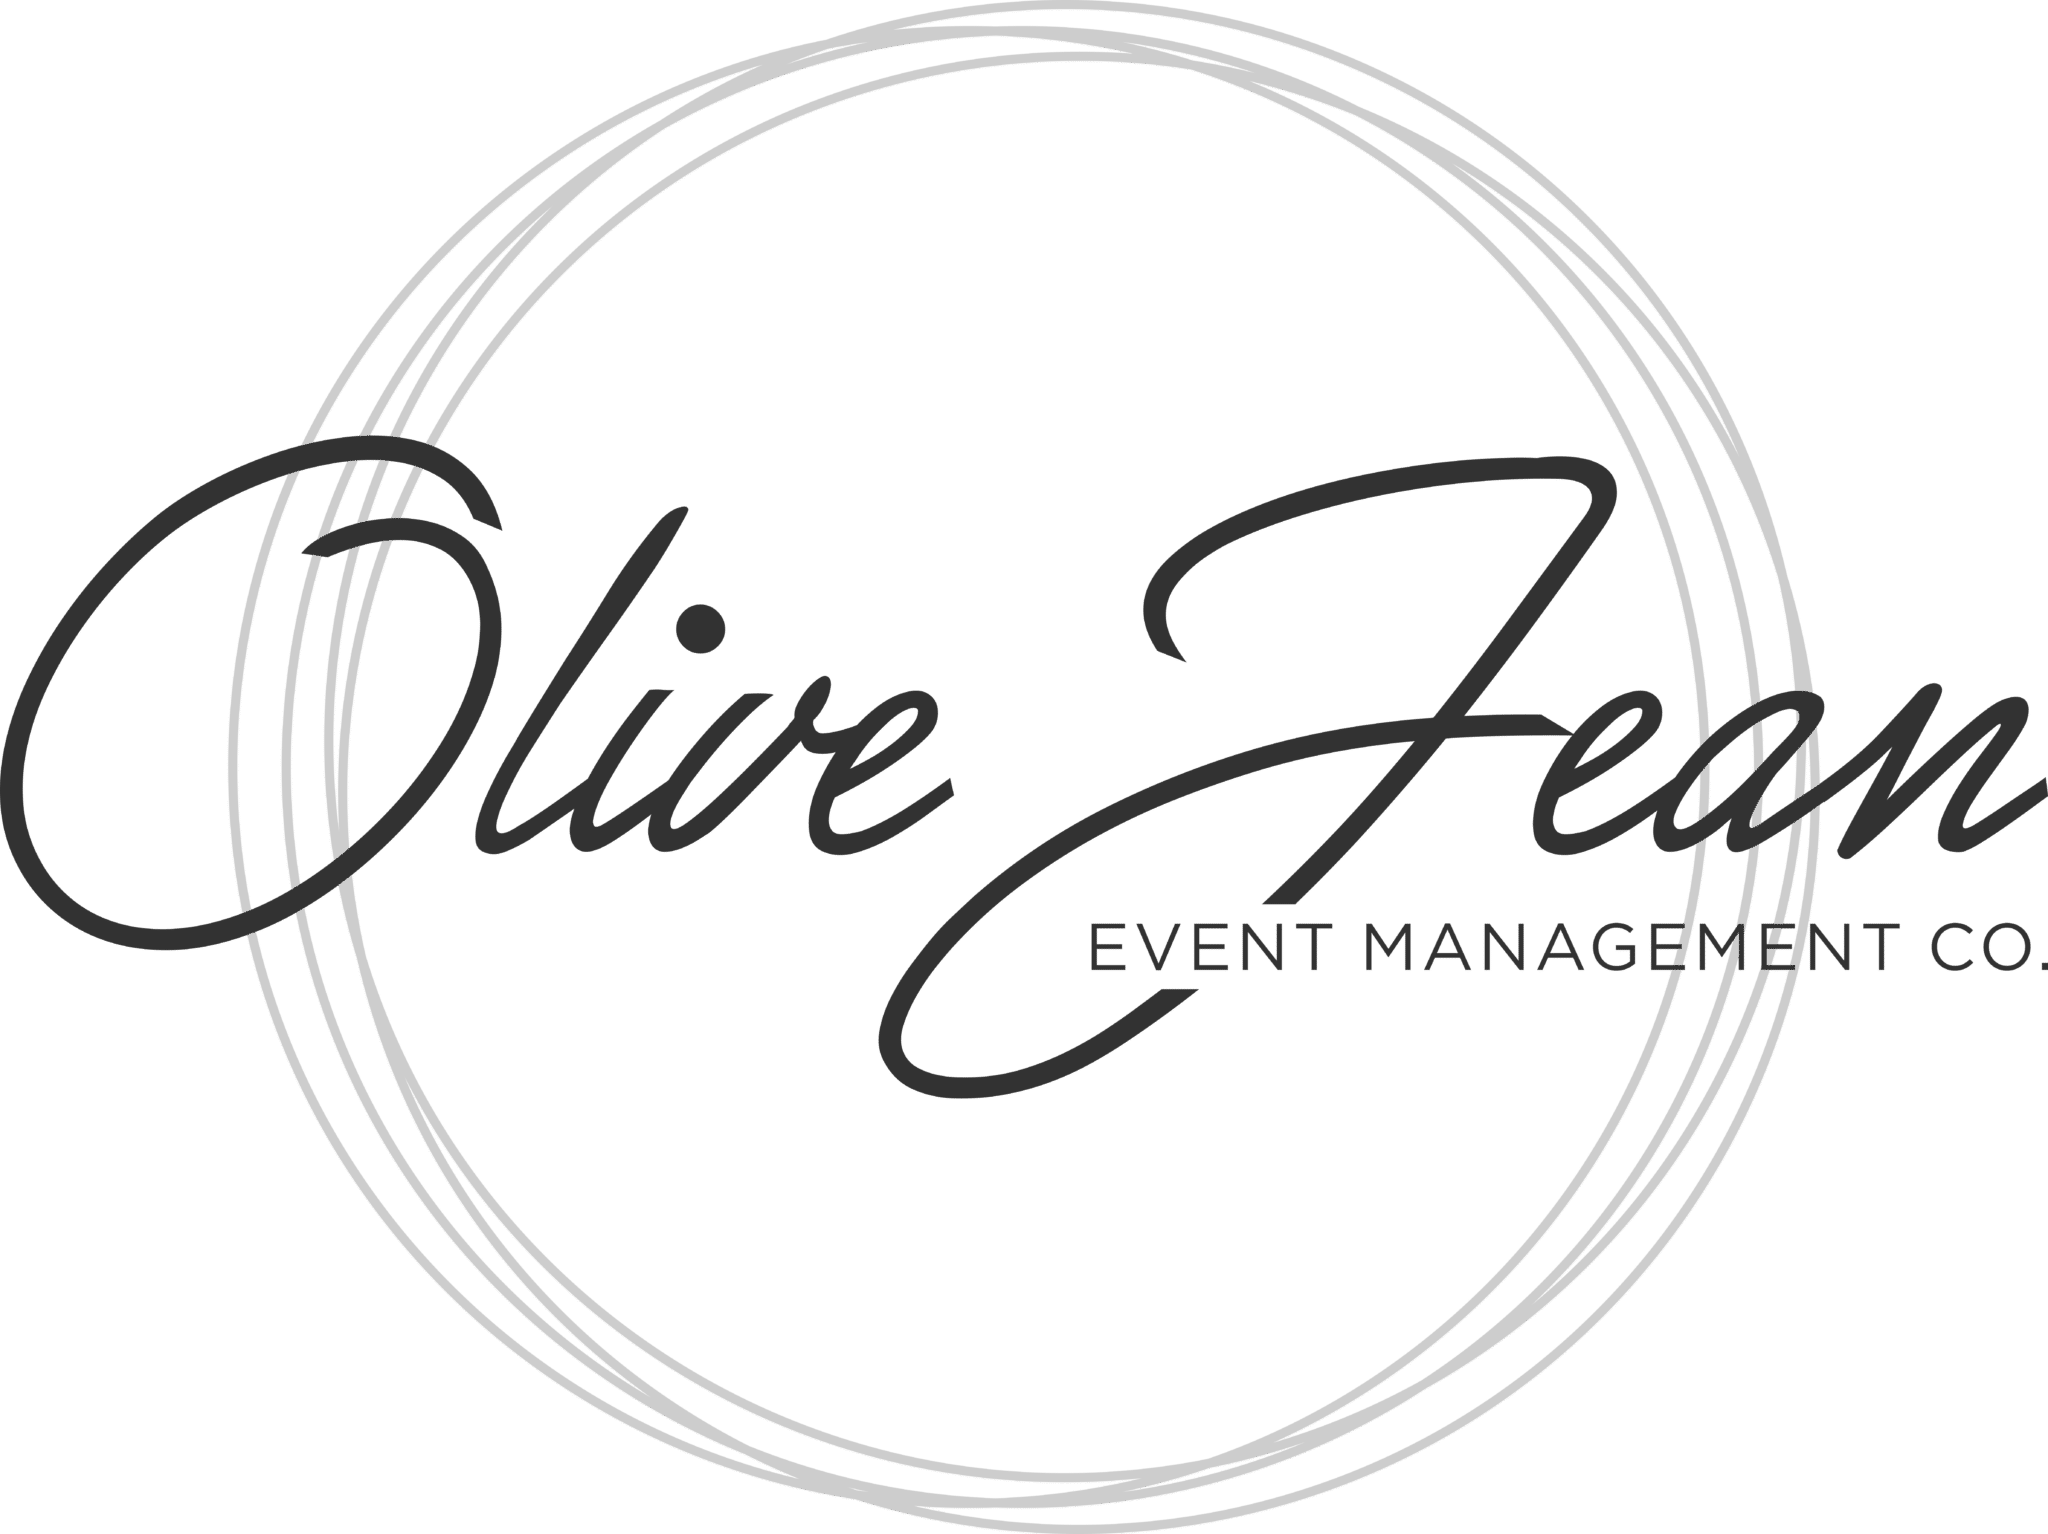 Olive Jean Event Management, Co.